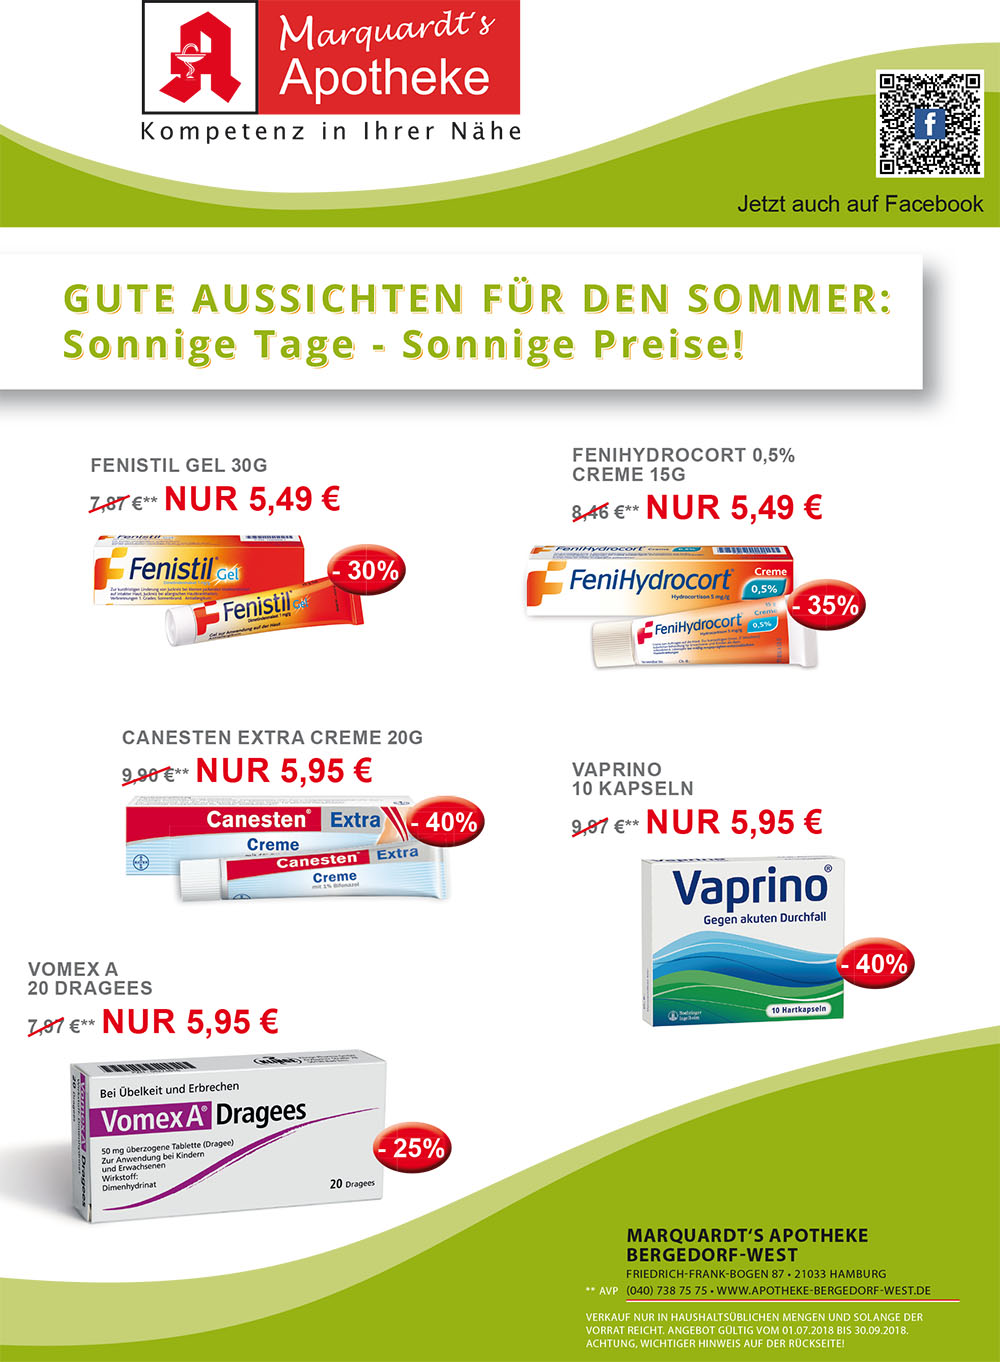 https://www.apotheken.de/fileadmin/clubarea/00000-Angebote/21033_bergedorf_west_angebot_1.jpg